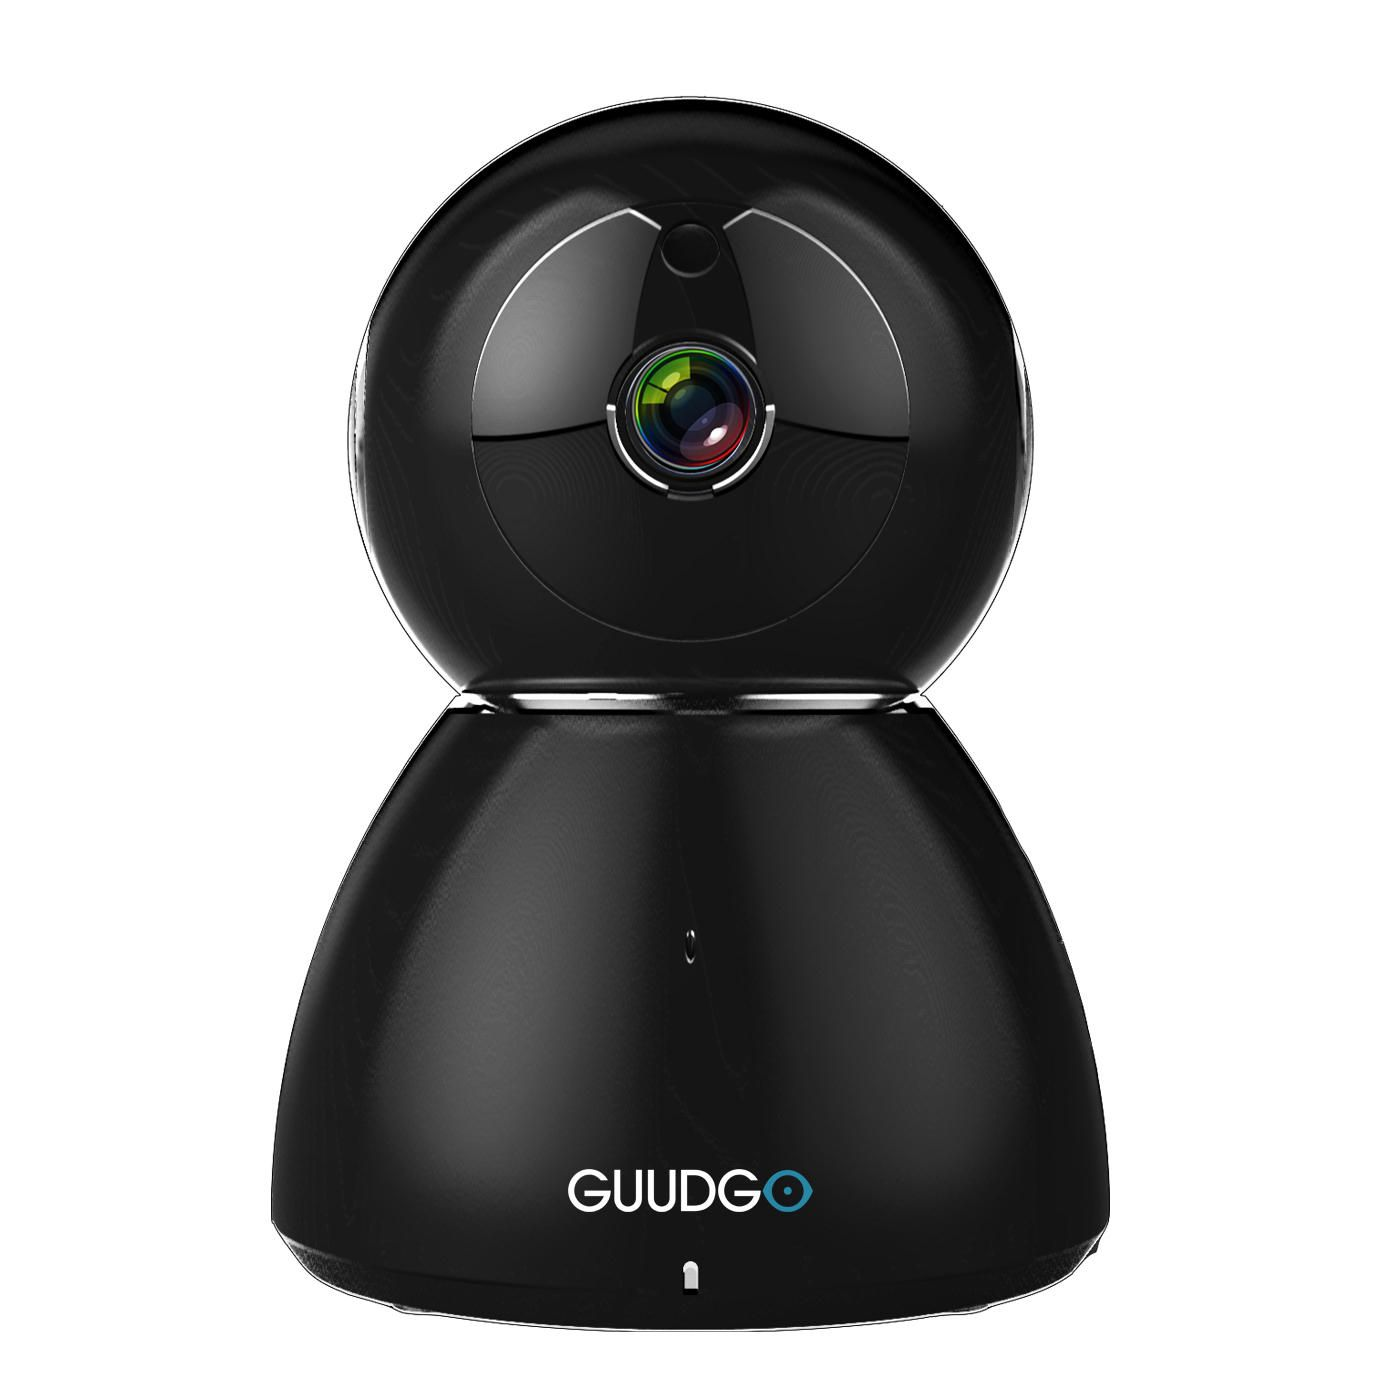 GUUDGO GD-SC03 Snowman 1080P Cloud WIFI IP Camera Black Pan&Tilt IR ...